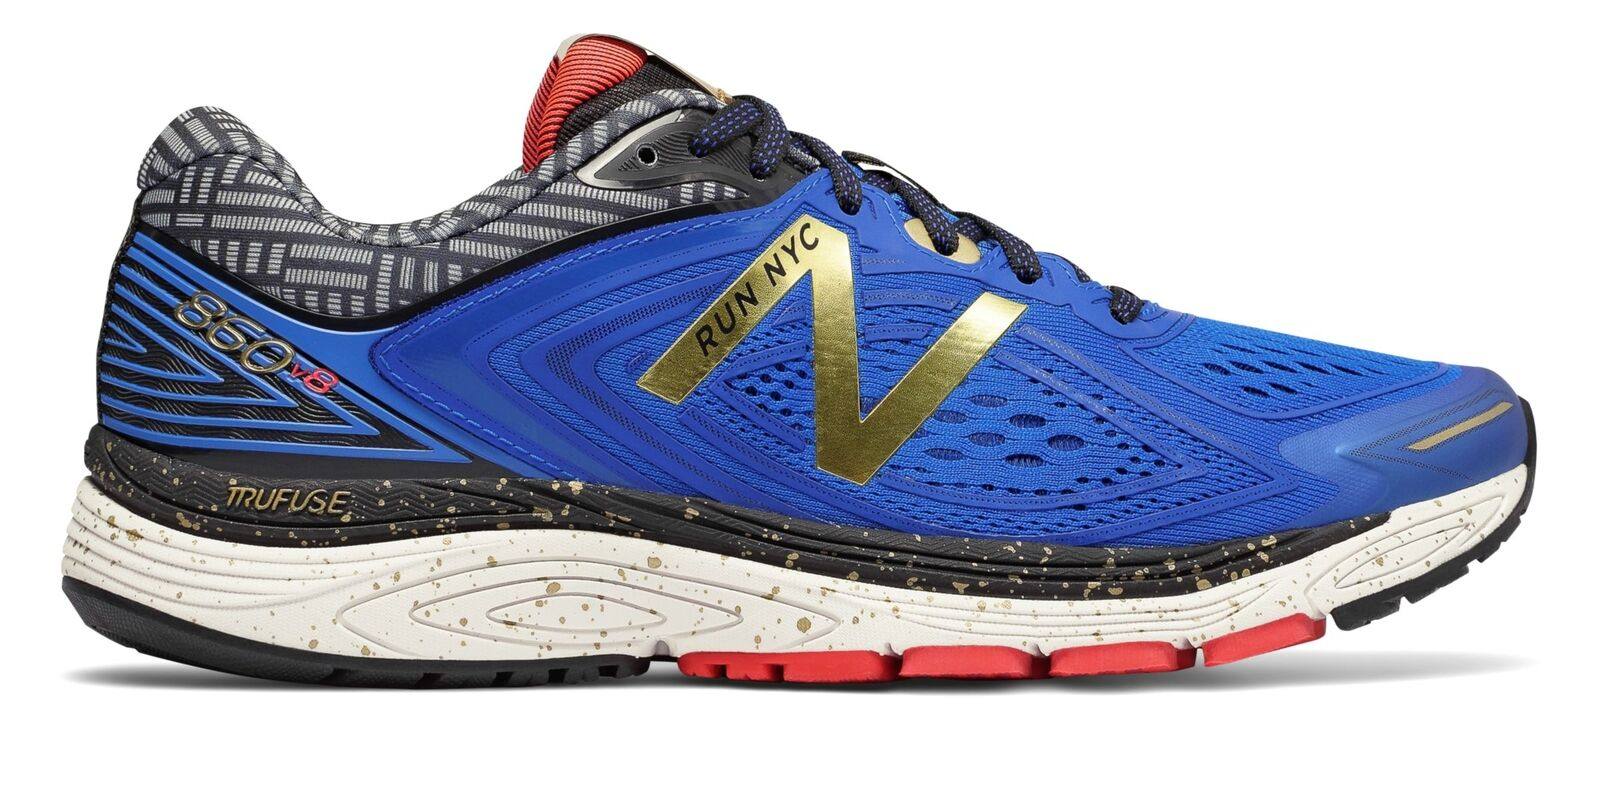 New New New Balance Men's 860v8 NYC Marathon shoes bluee with gold 115989